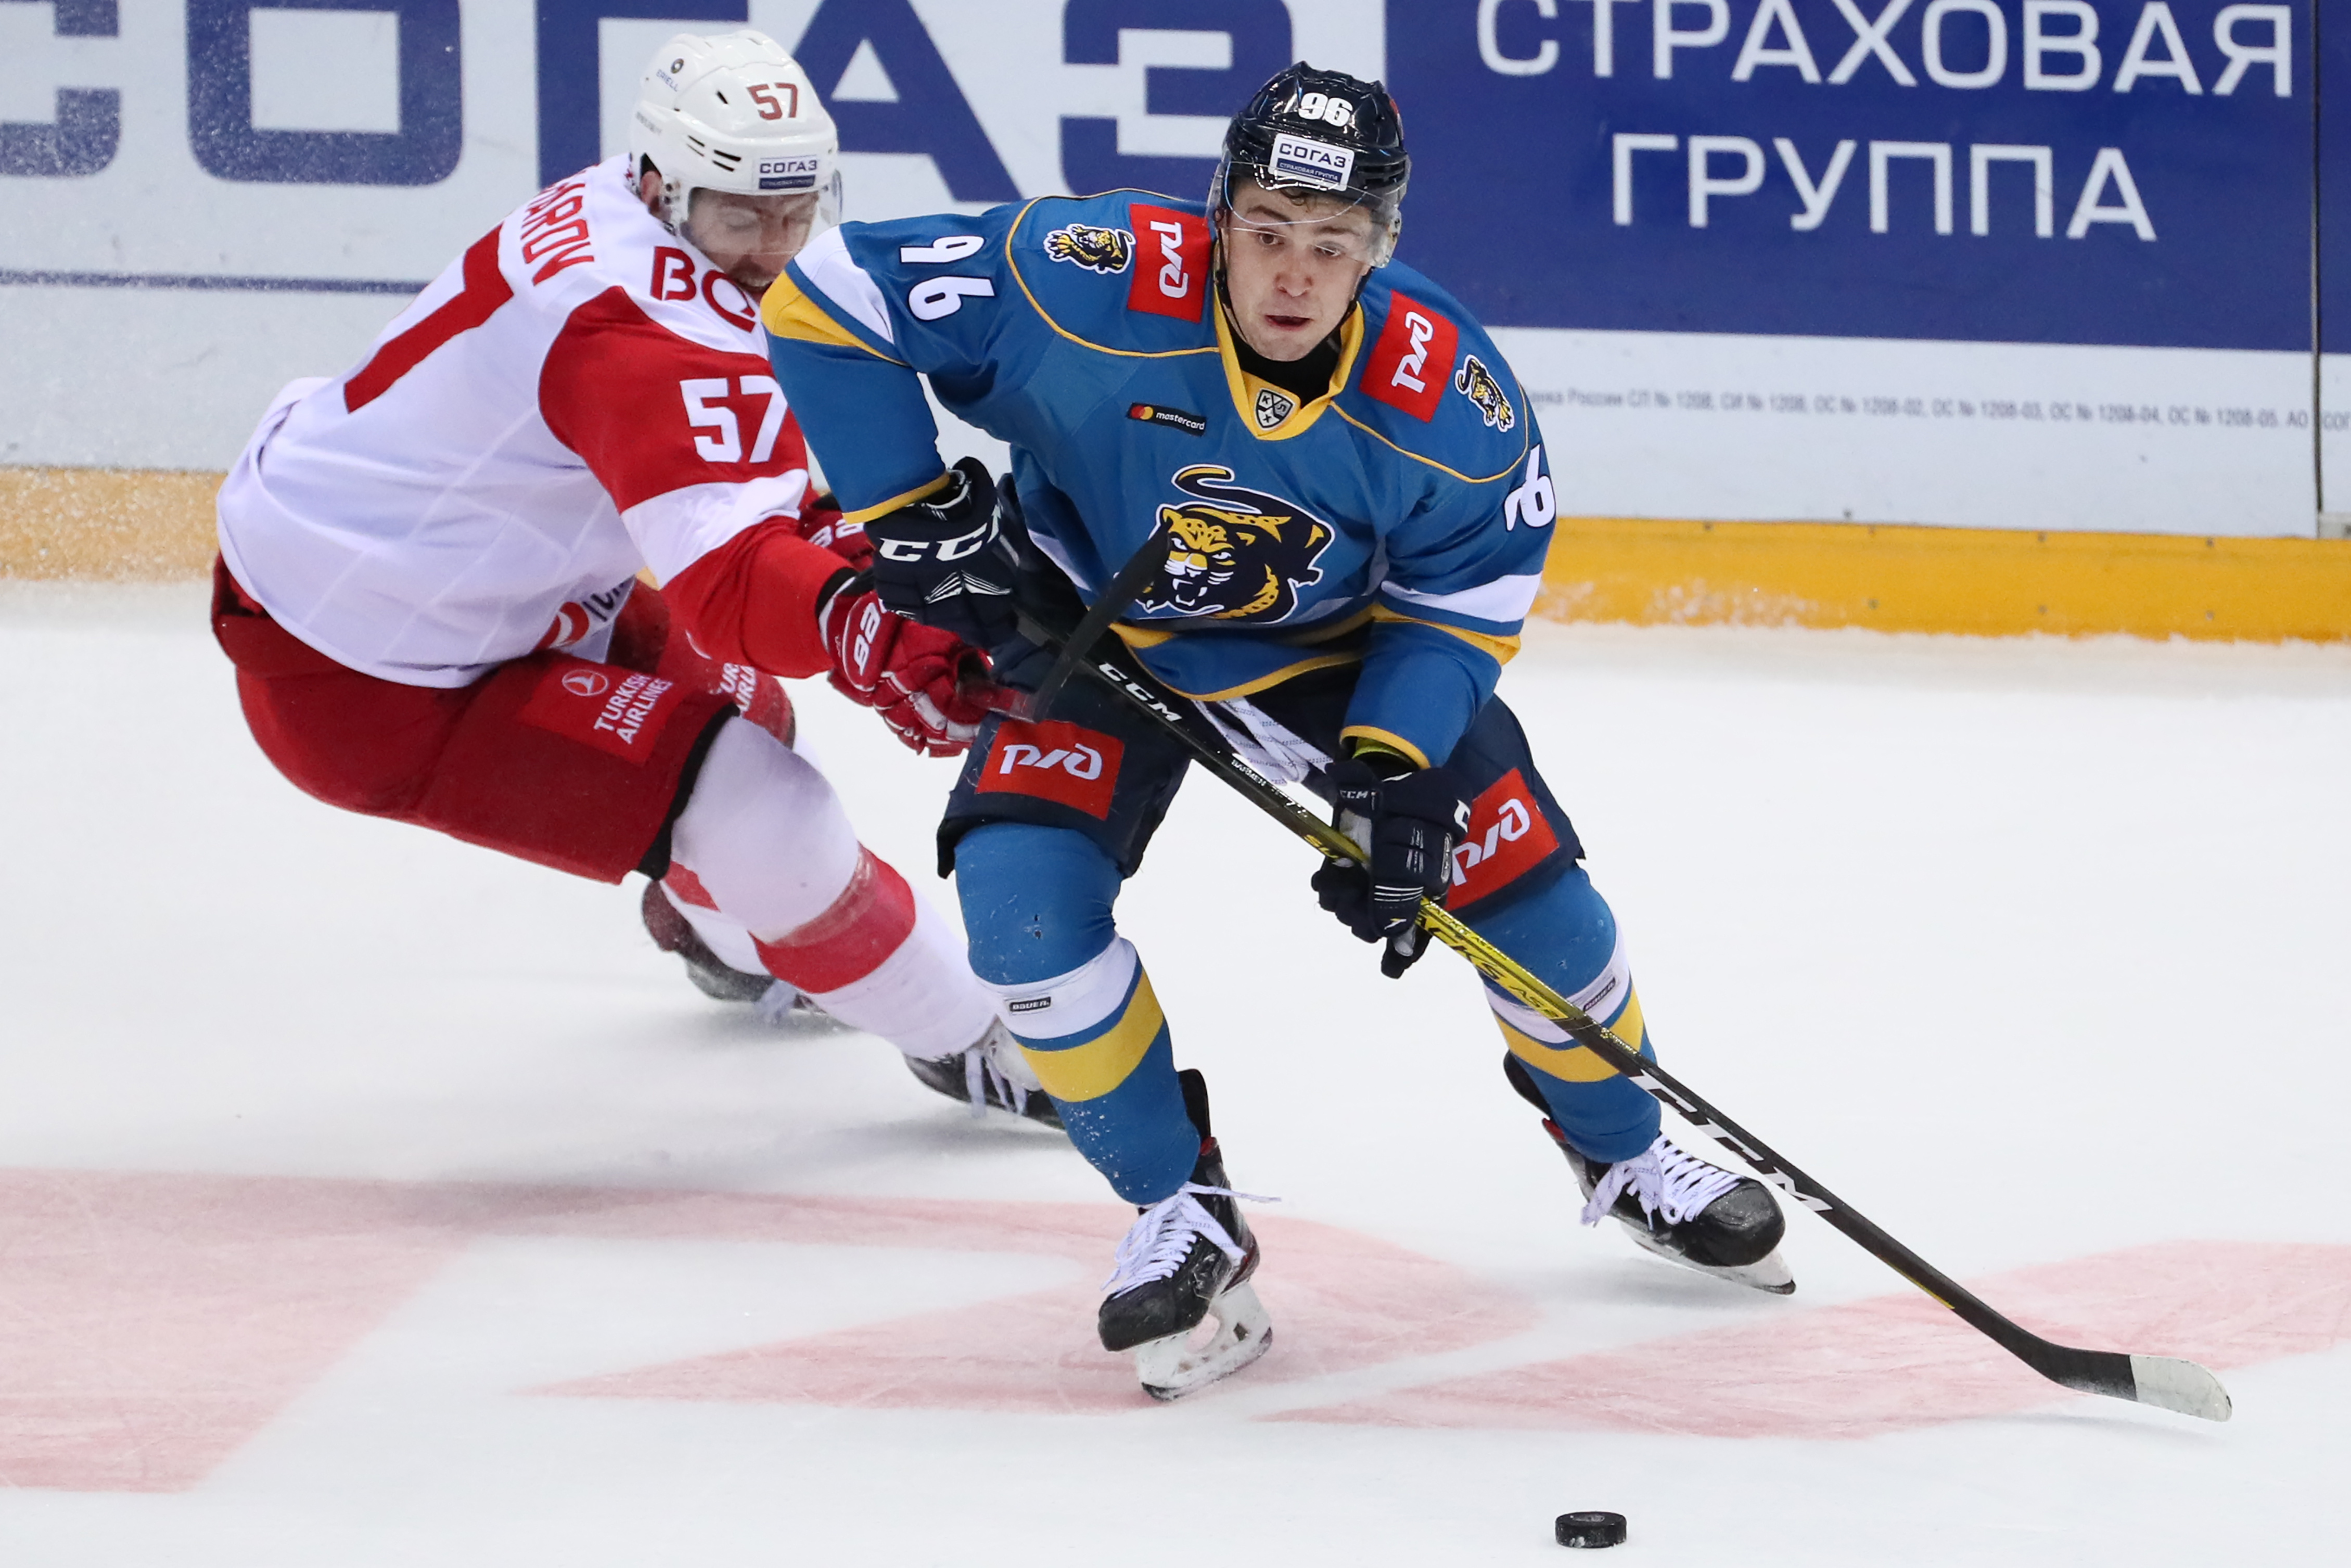 Kontinental Hockey League: HC Sochi vs Spartak Moscow